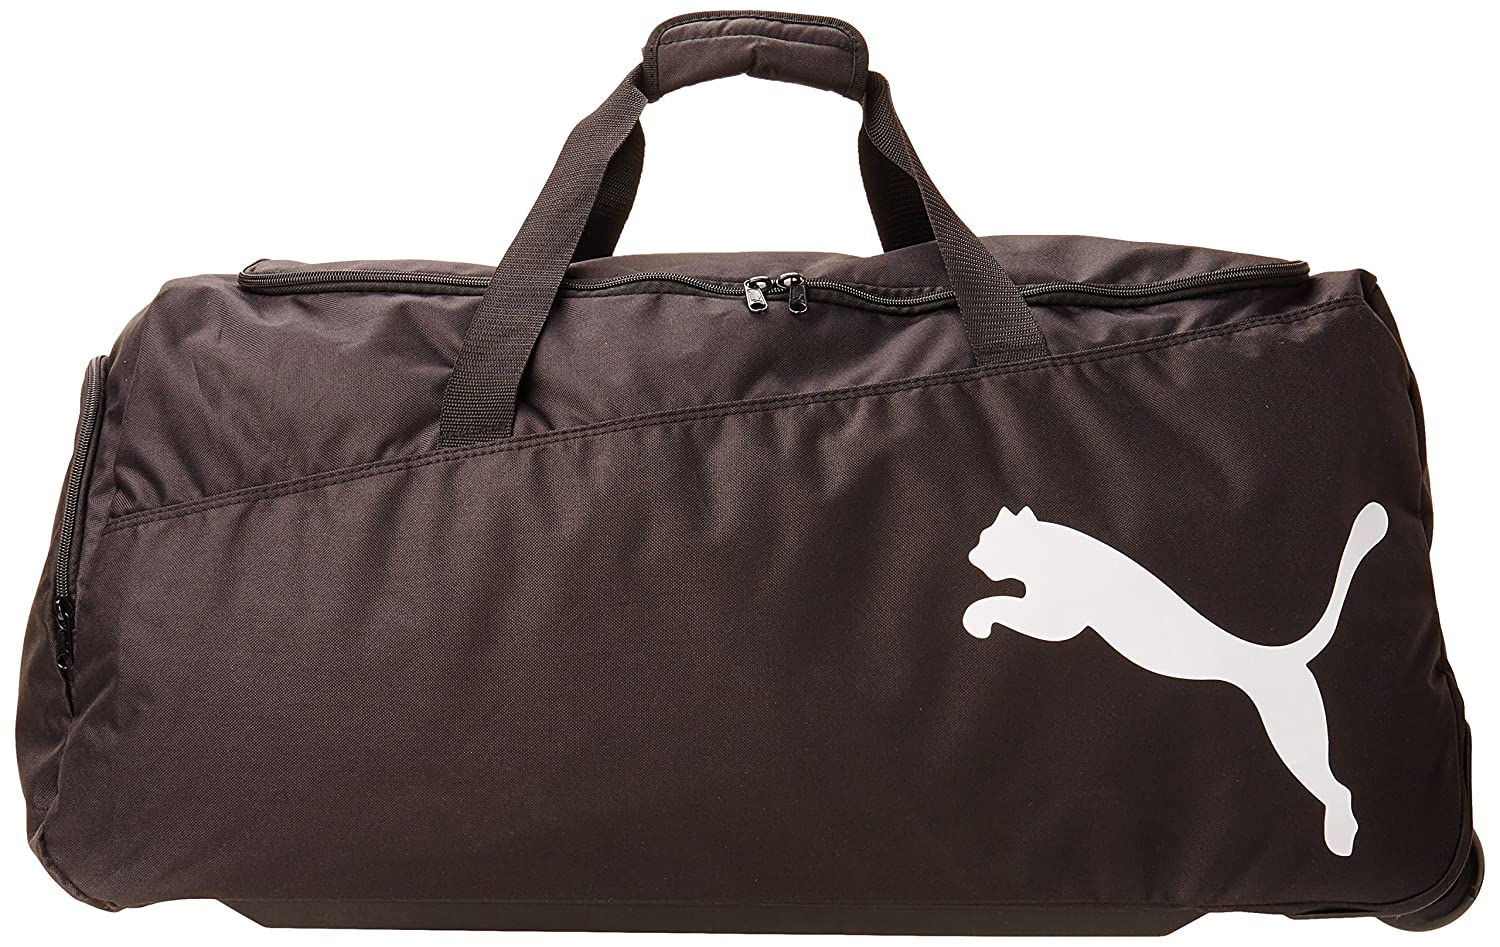 Puma Sac de sport Pro training Large Wheel Bag km3XwyG